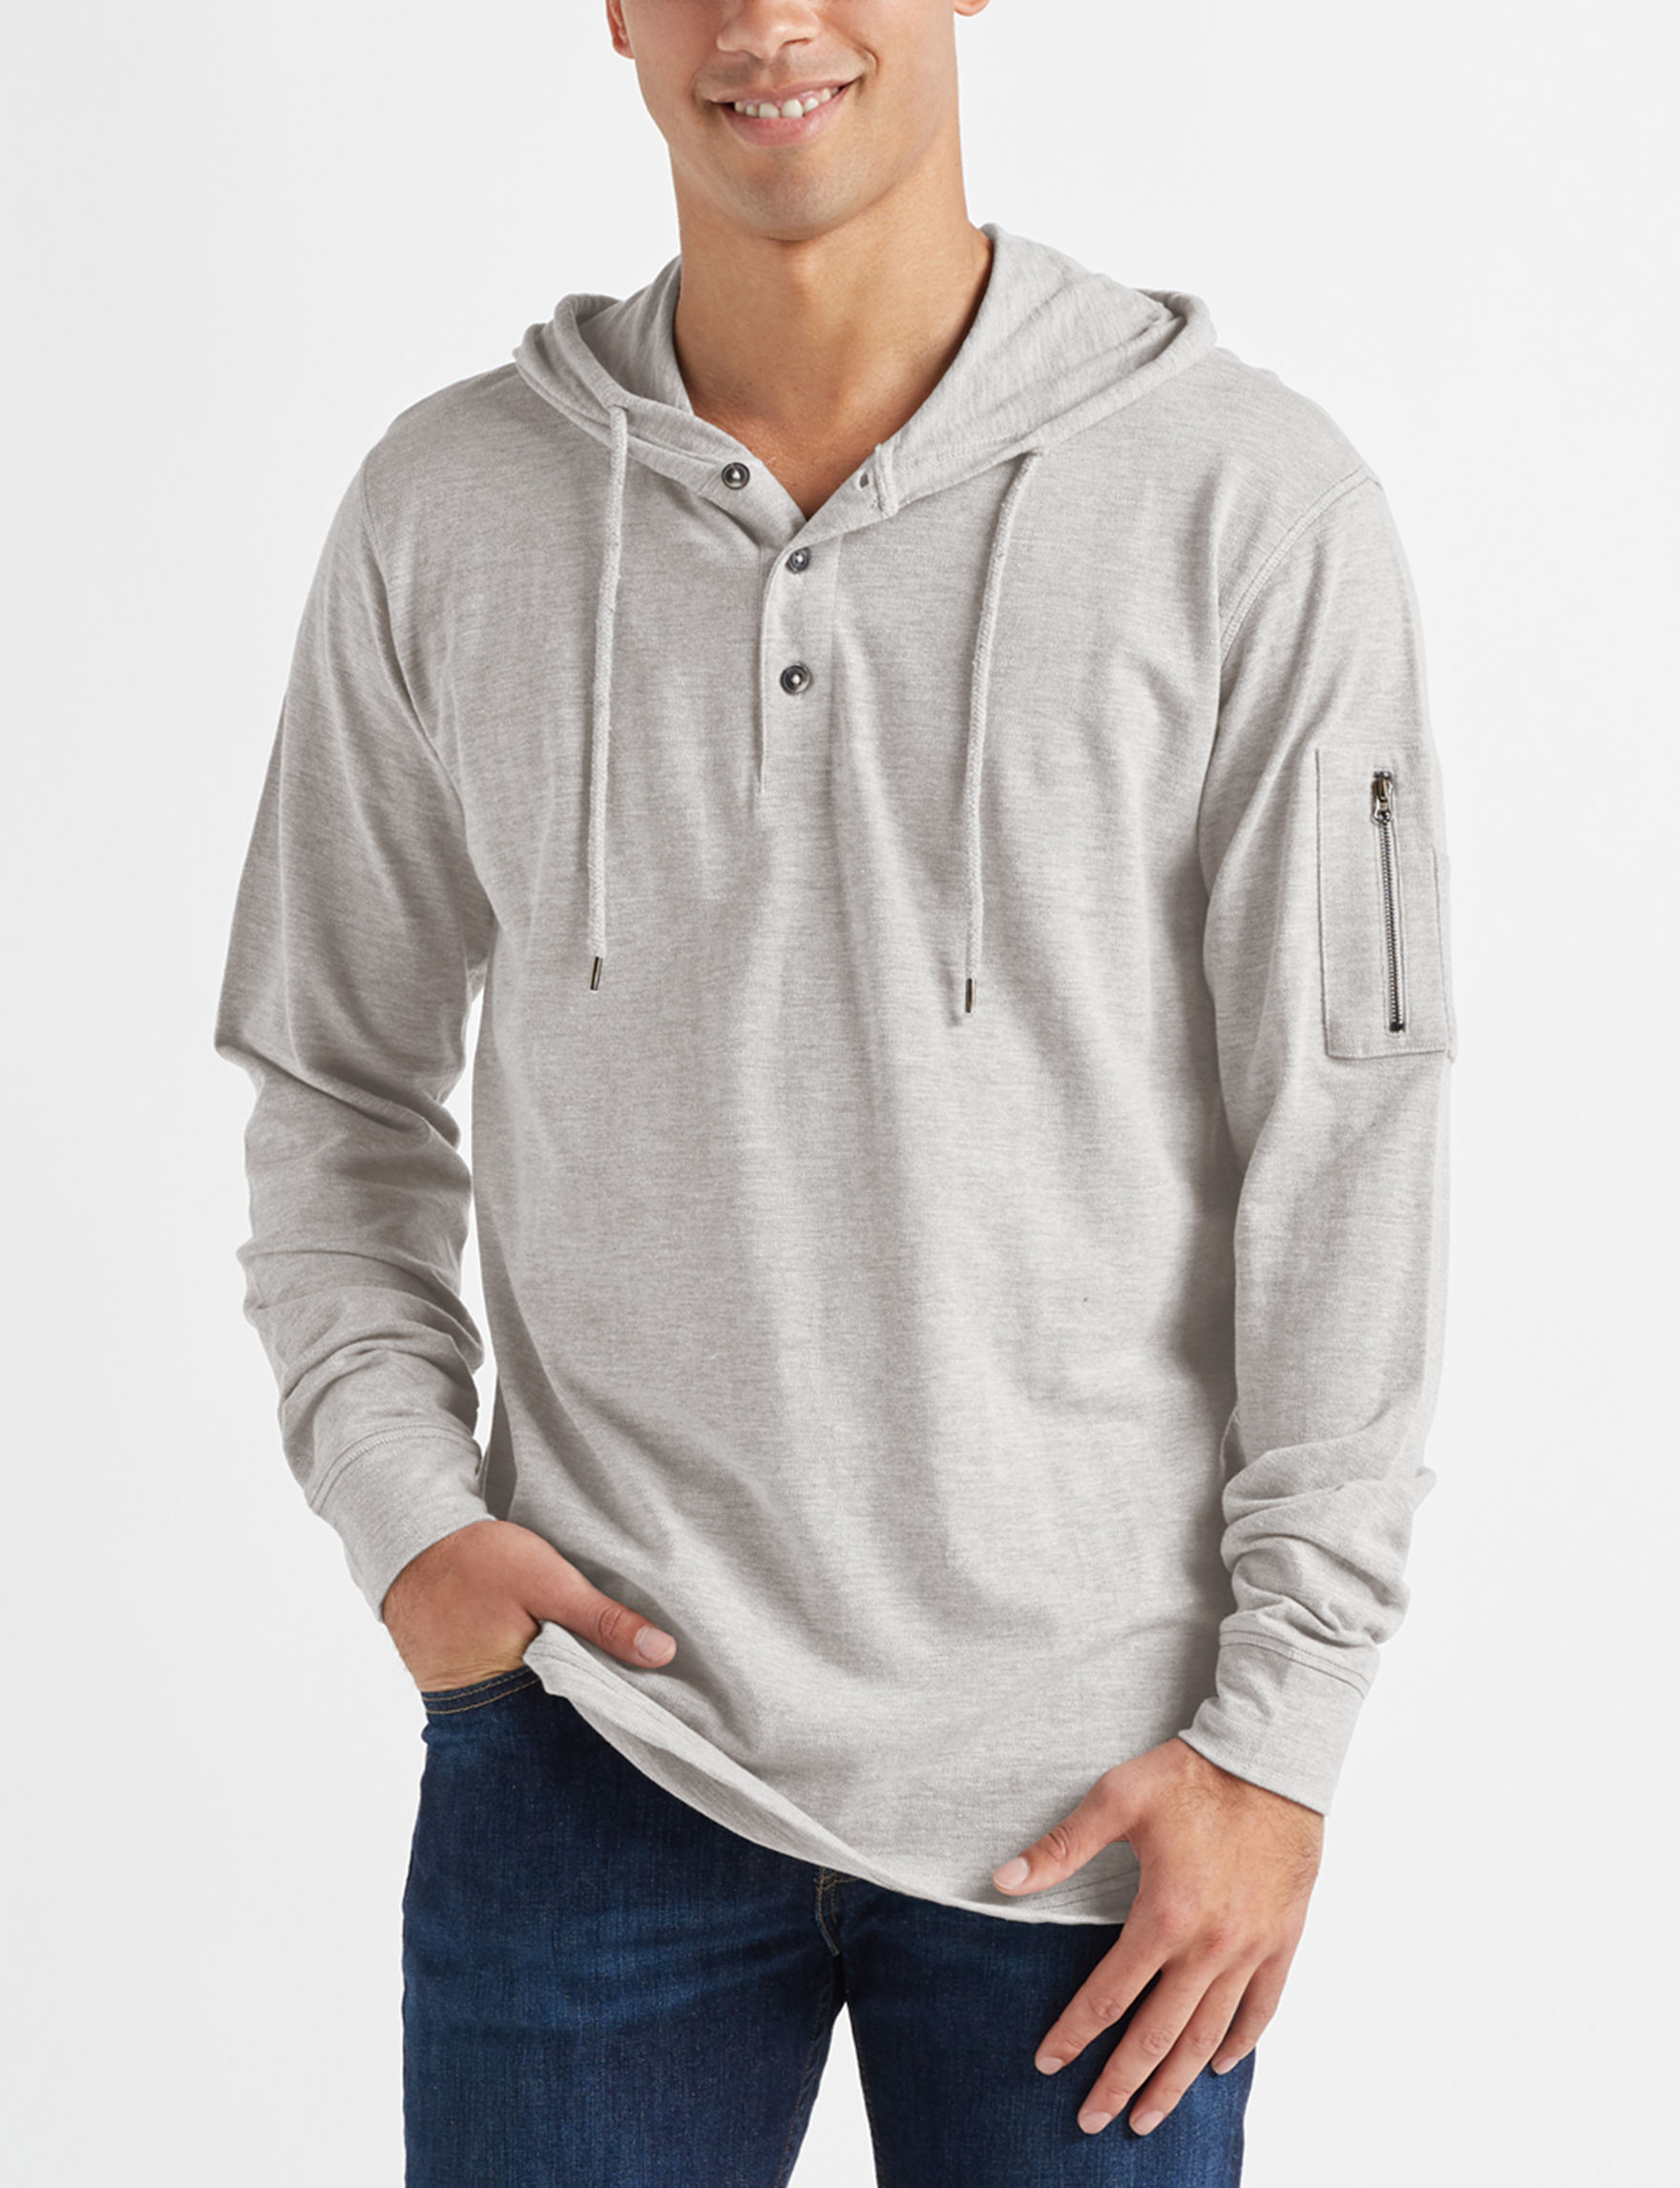 Modern Culture Heather Grey Pull-overs